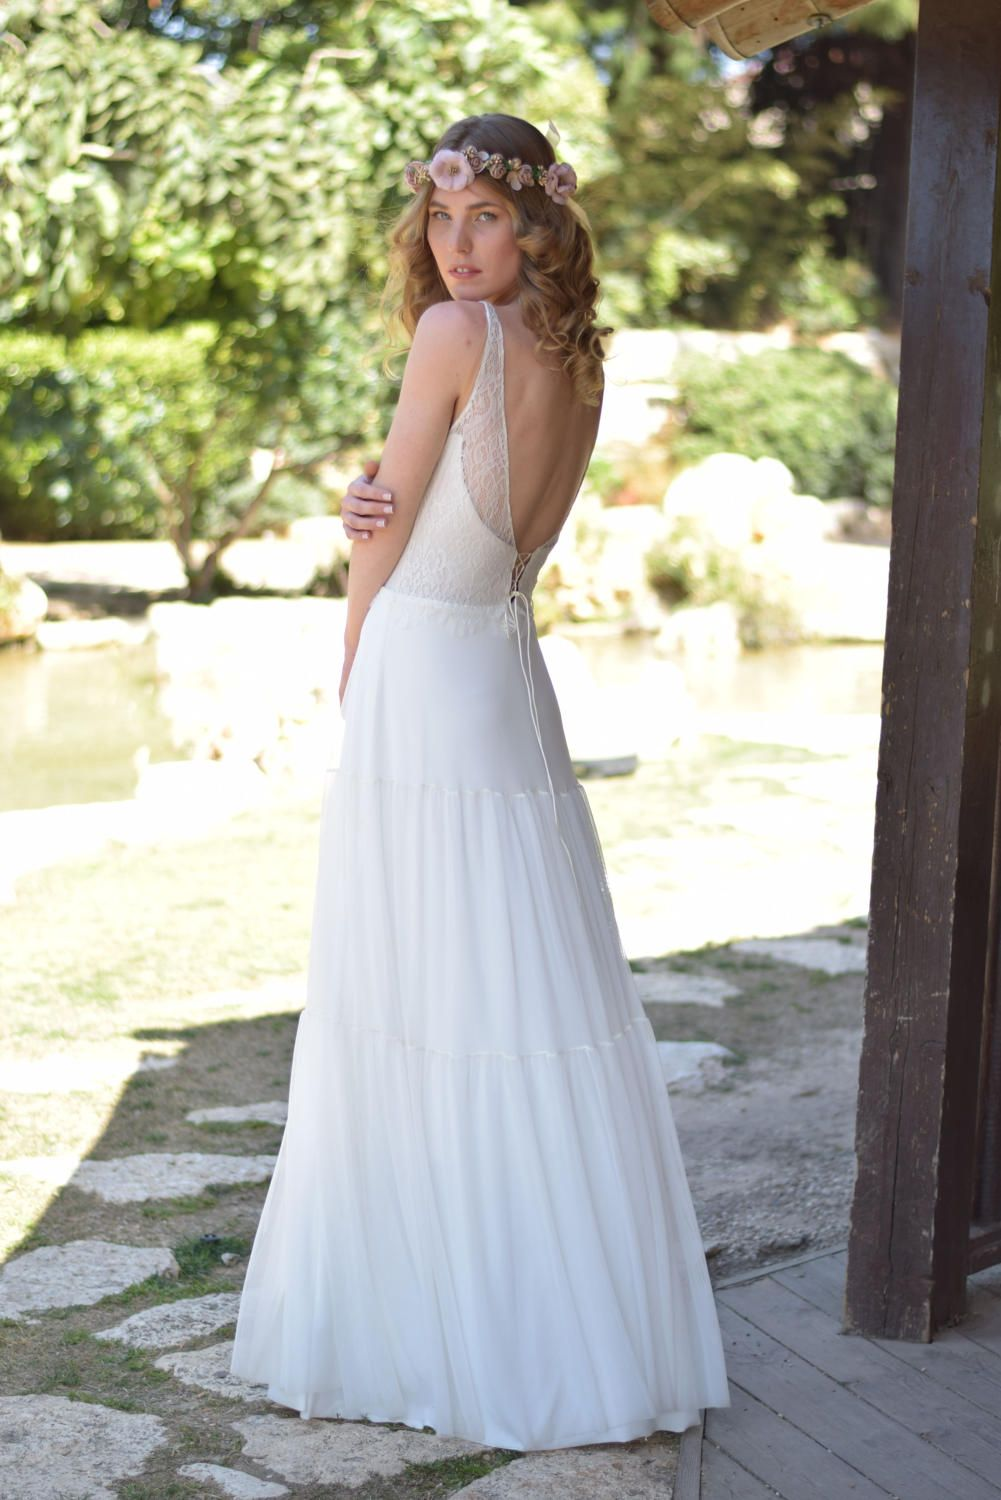 Camilla - Romantic wedding dress with lace top and chiffon skirt ...